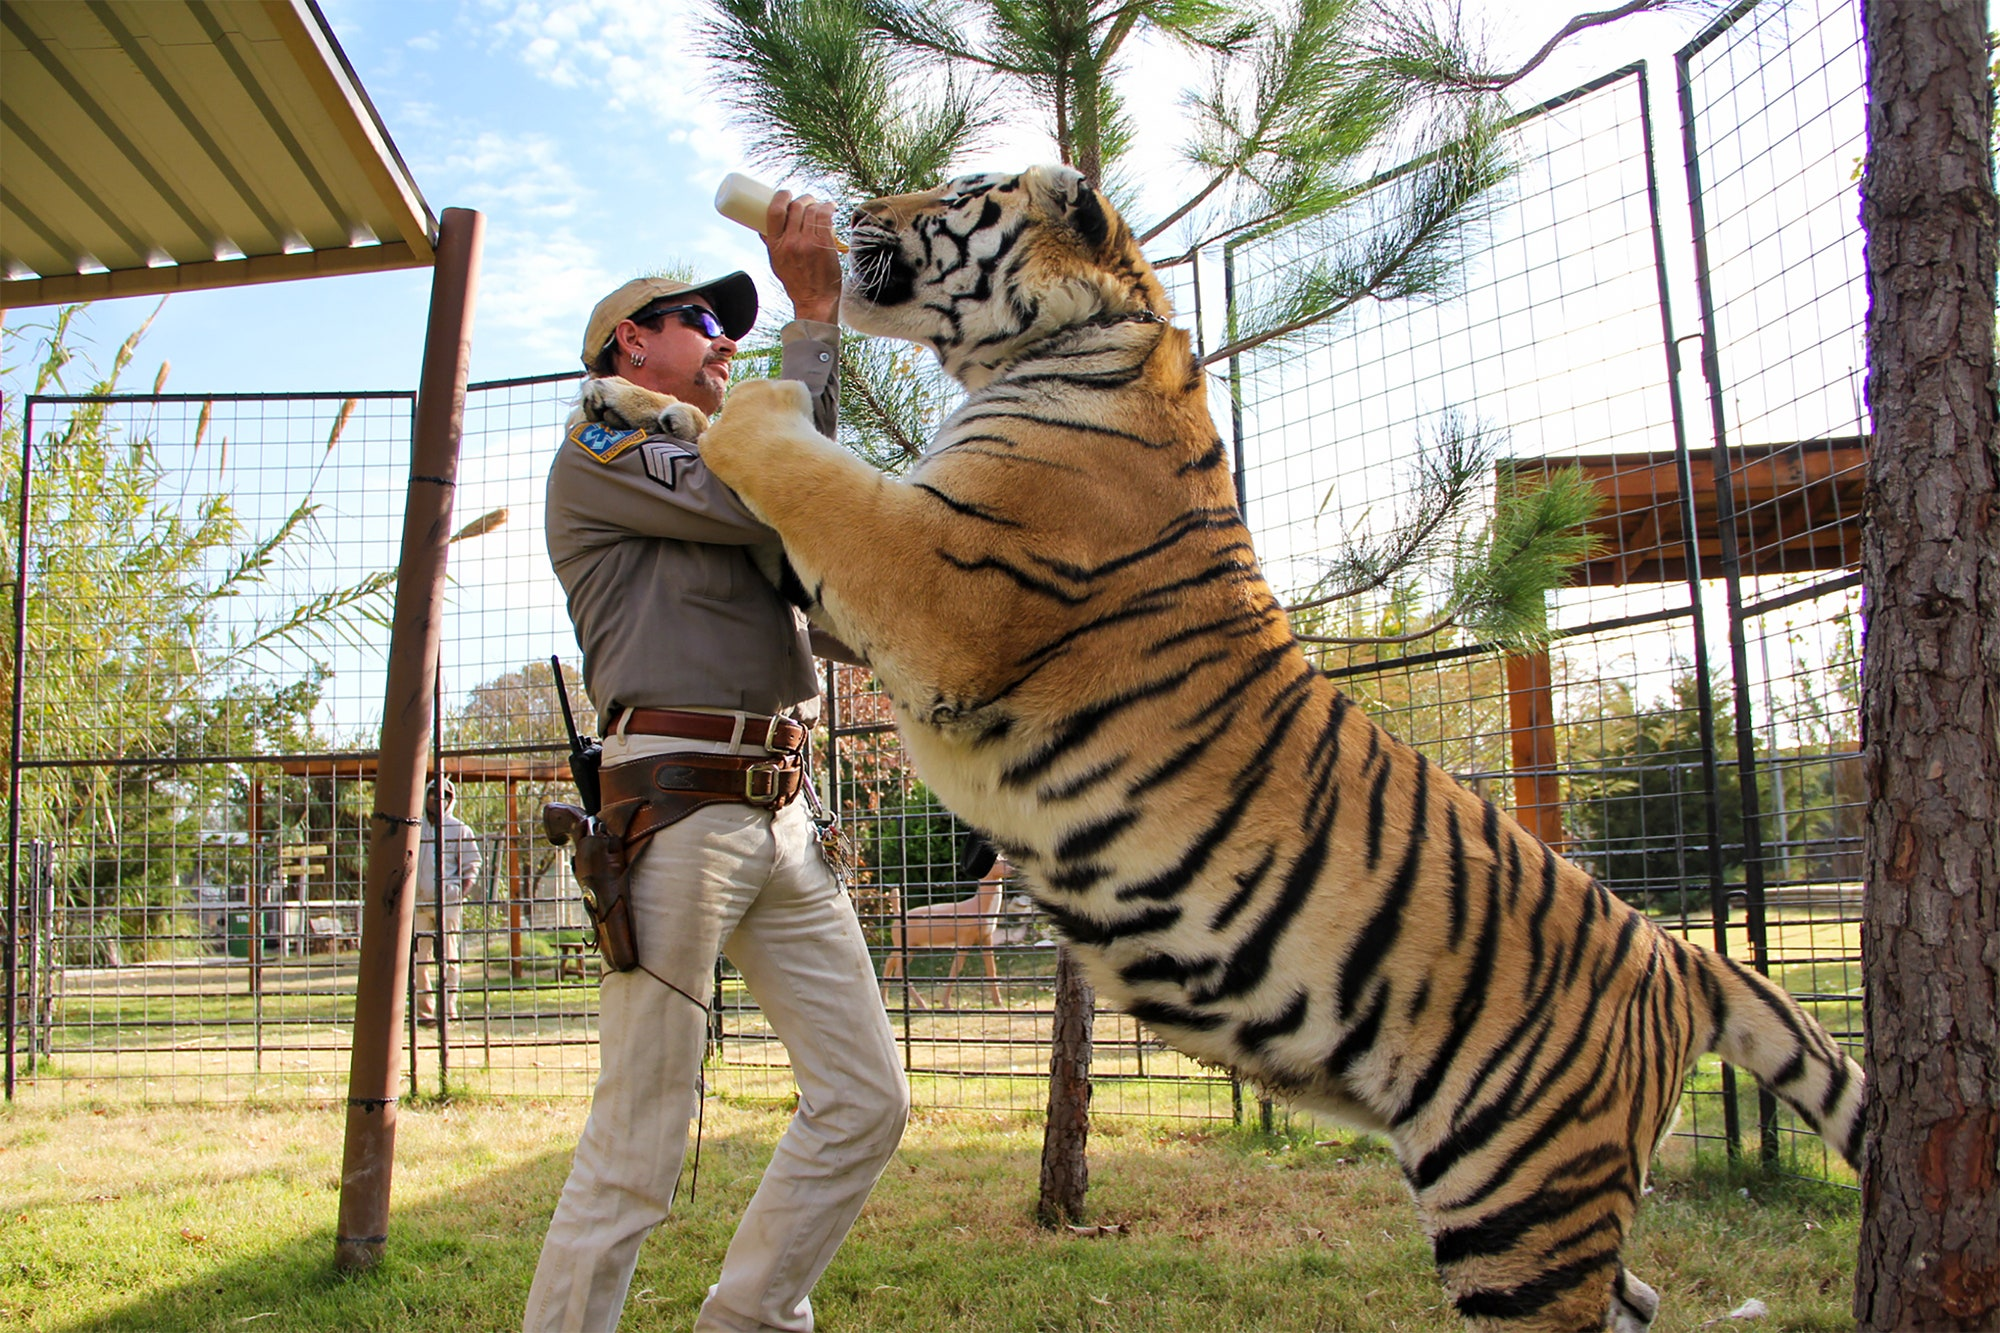 Tiger King's Joe Exotic Suing From Prison For $94 Million